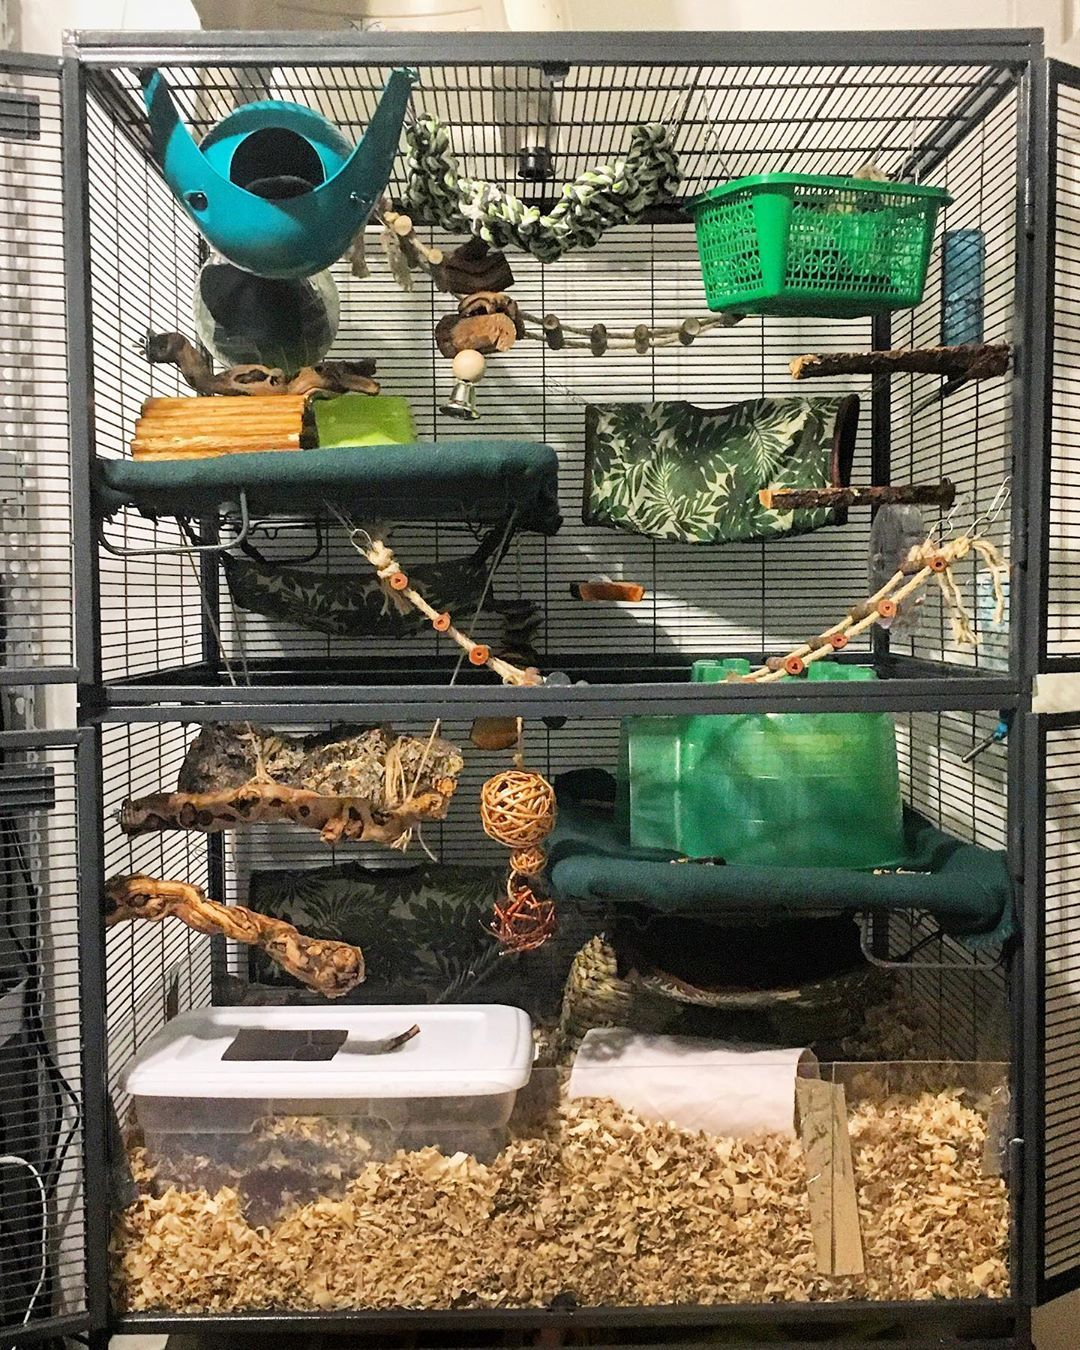 Jessica Mother Of Dragons On Instagram Tada My Naturalistic Rat Cage It Is Complete With 1 Sorta Green Space Pod Sputni Rat Cage Pet Rat Cages Pet Rats